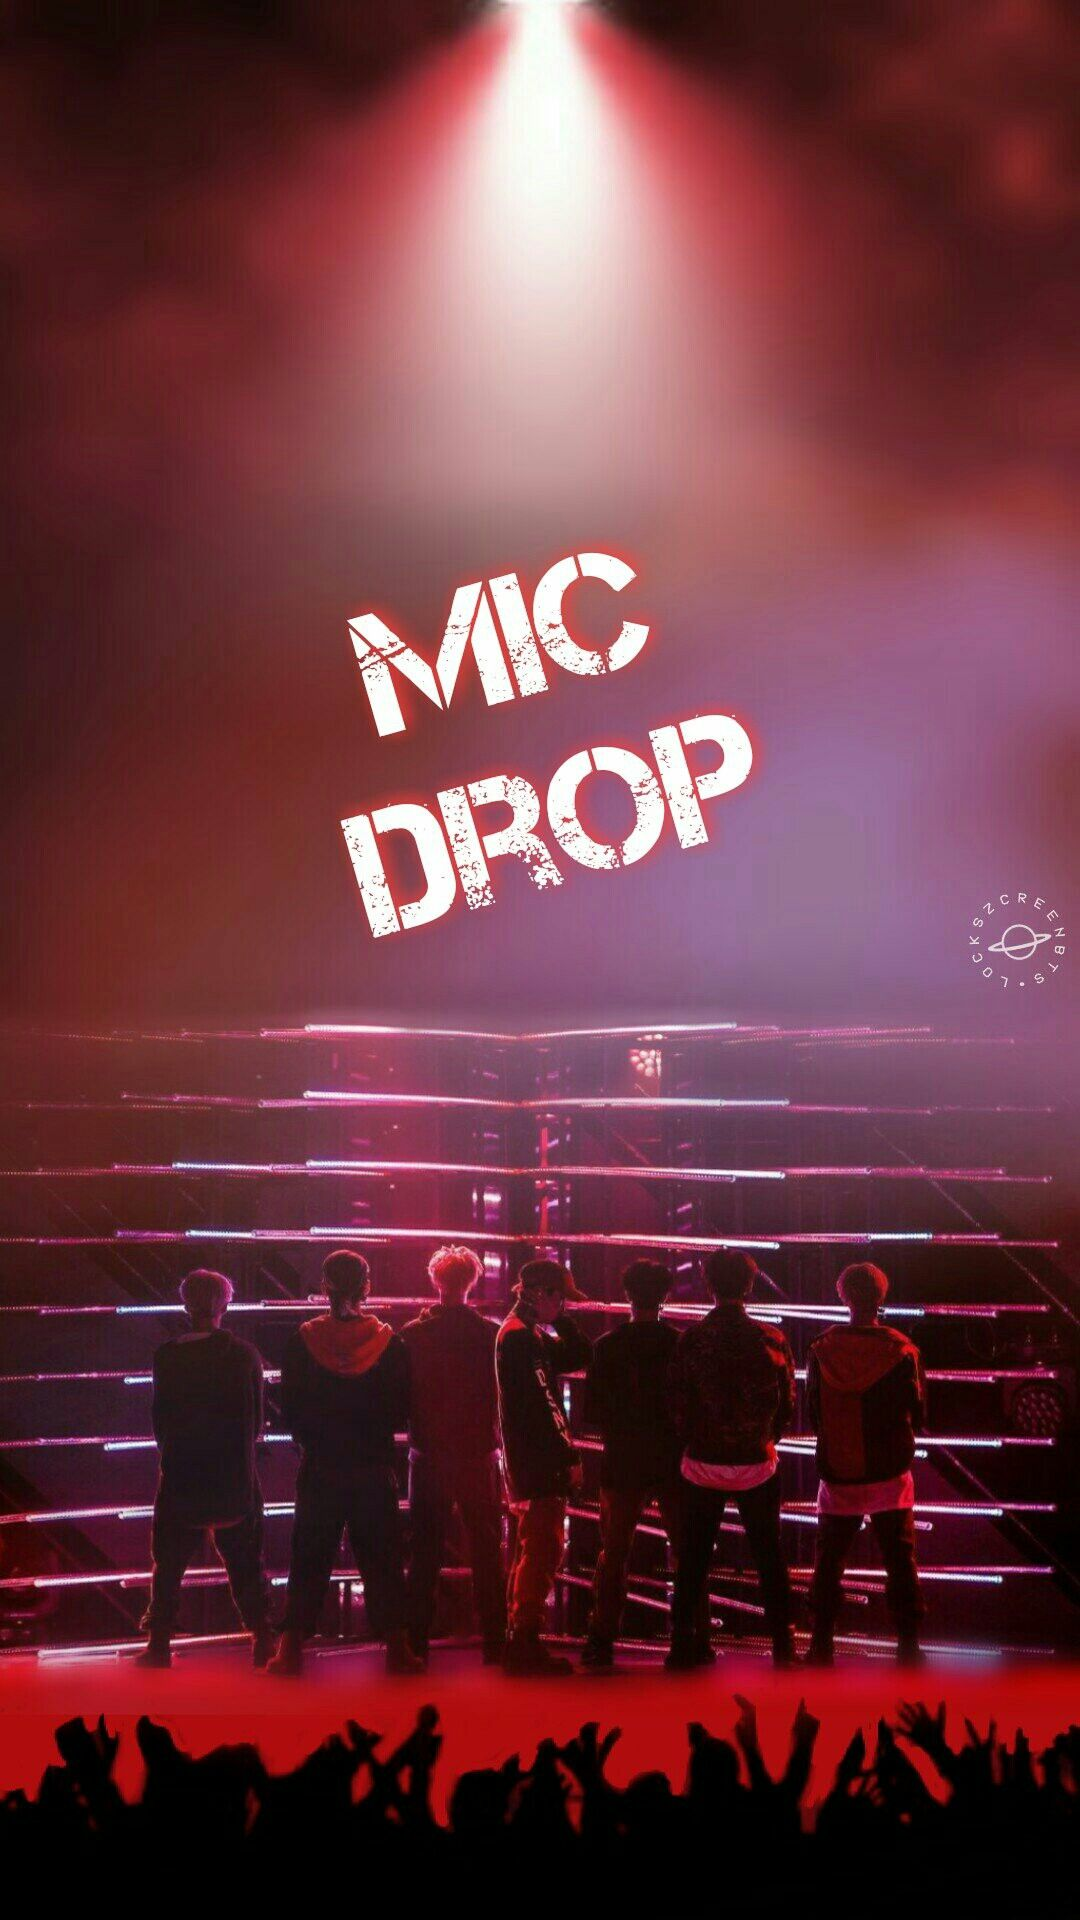 Pin By Alice On Bts Wallpapers Bts Concept Photo Bts Lyric Bts Wallpaper Bts wallpaper mic drop